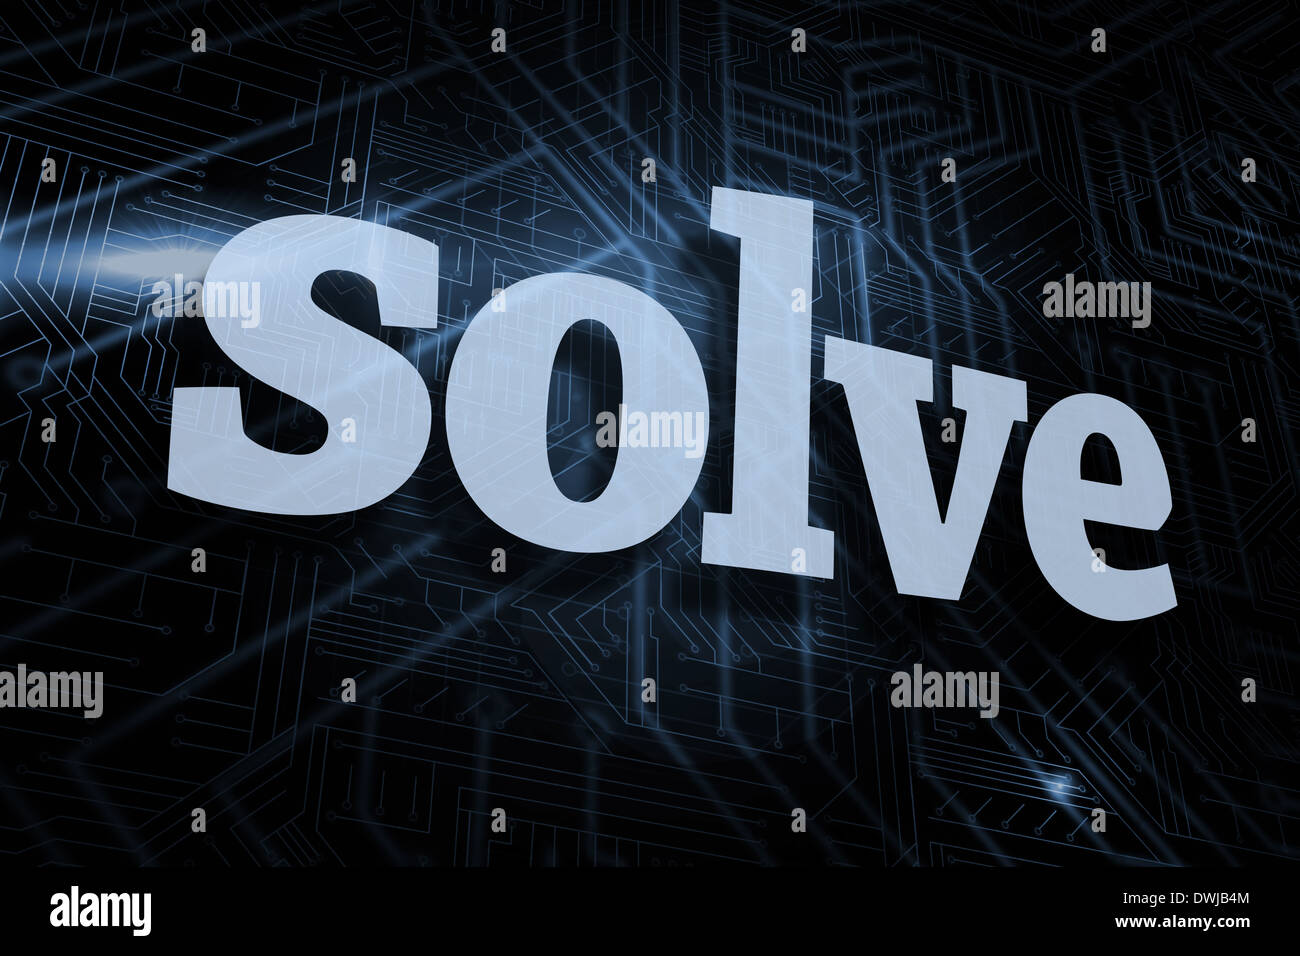 Solve against futuristic black and blue background - Stock Image